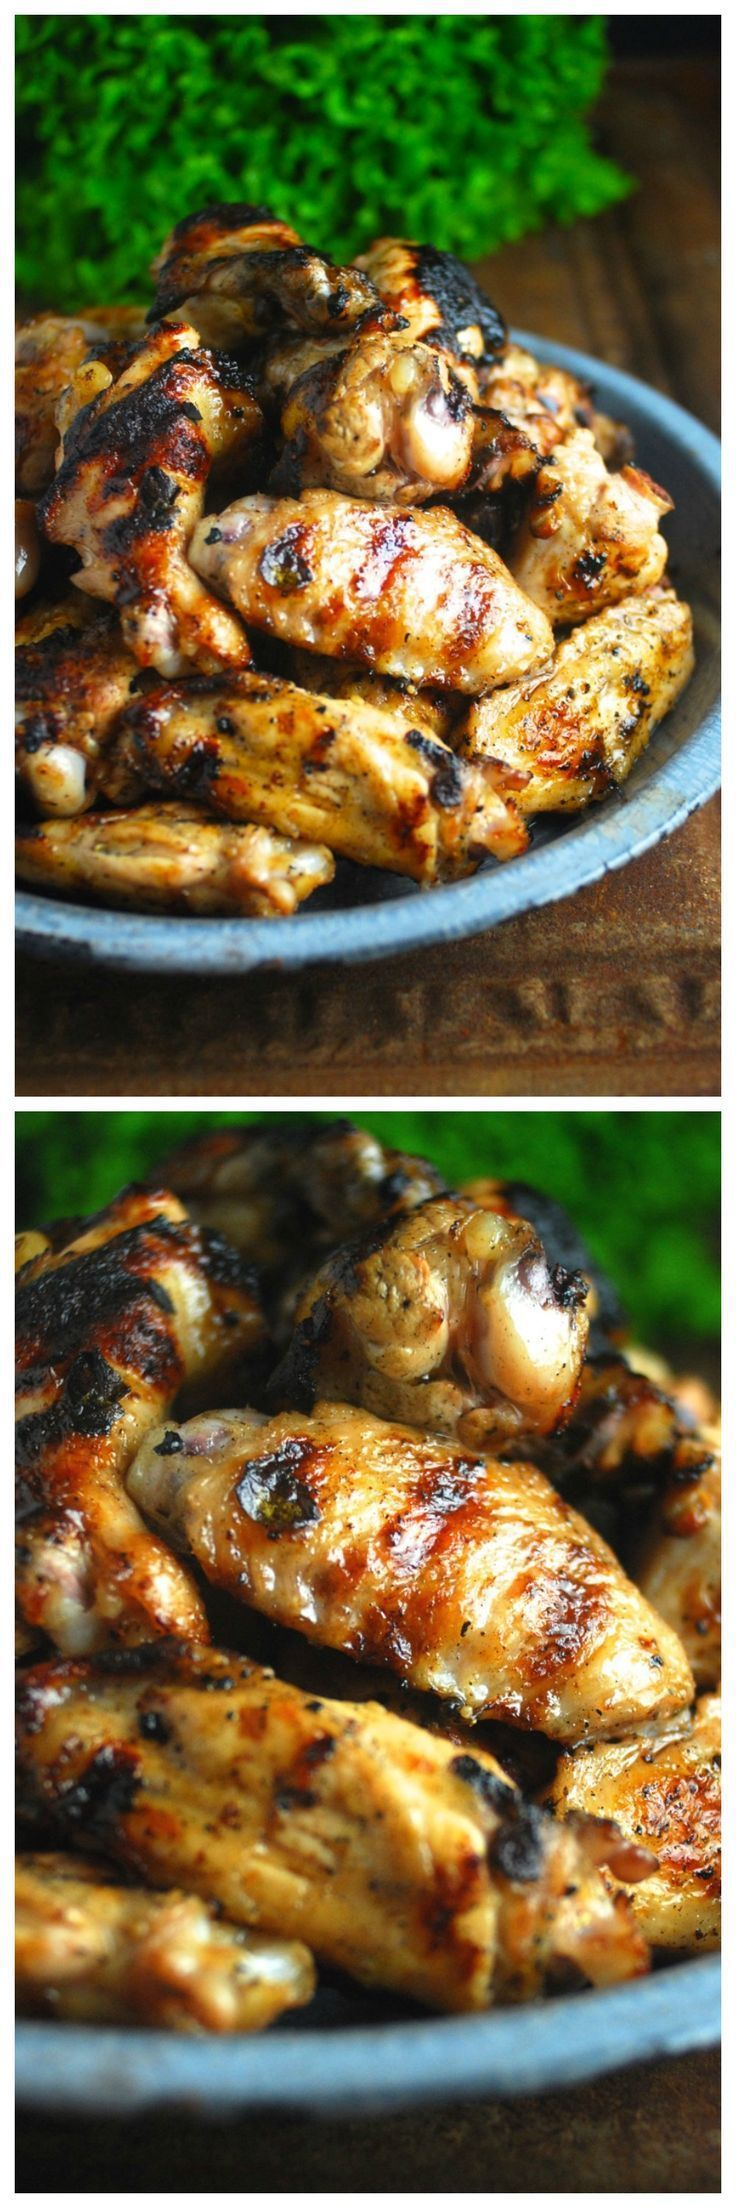 Game day recipe - Garlicky Lemon Cuban Chicken Wings. Perfect for Super Bowl! Paleo, gluten-free, Whole30 approved.